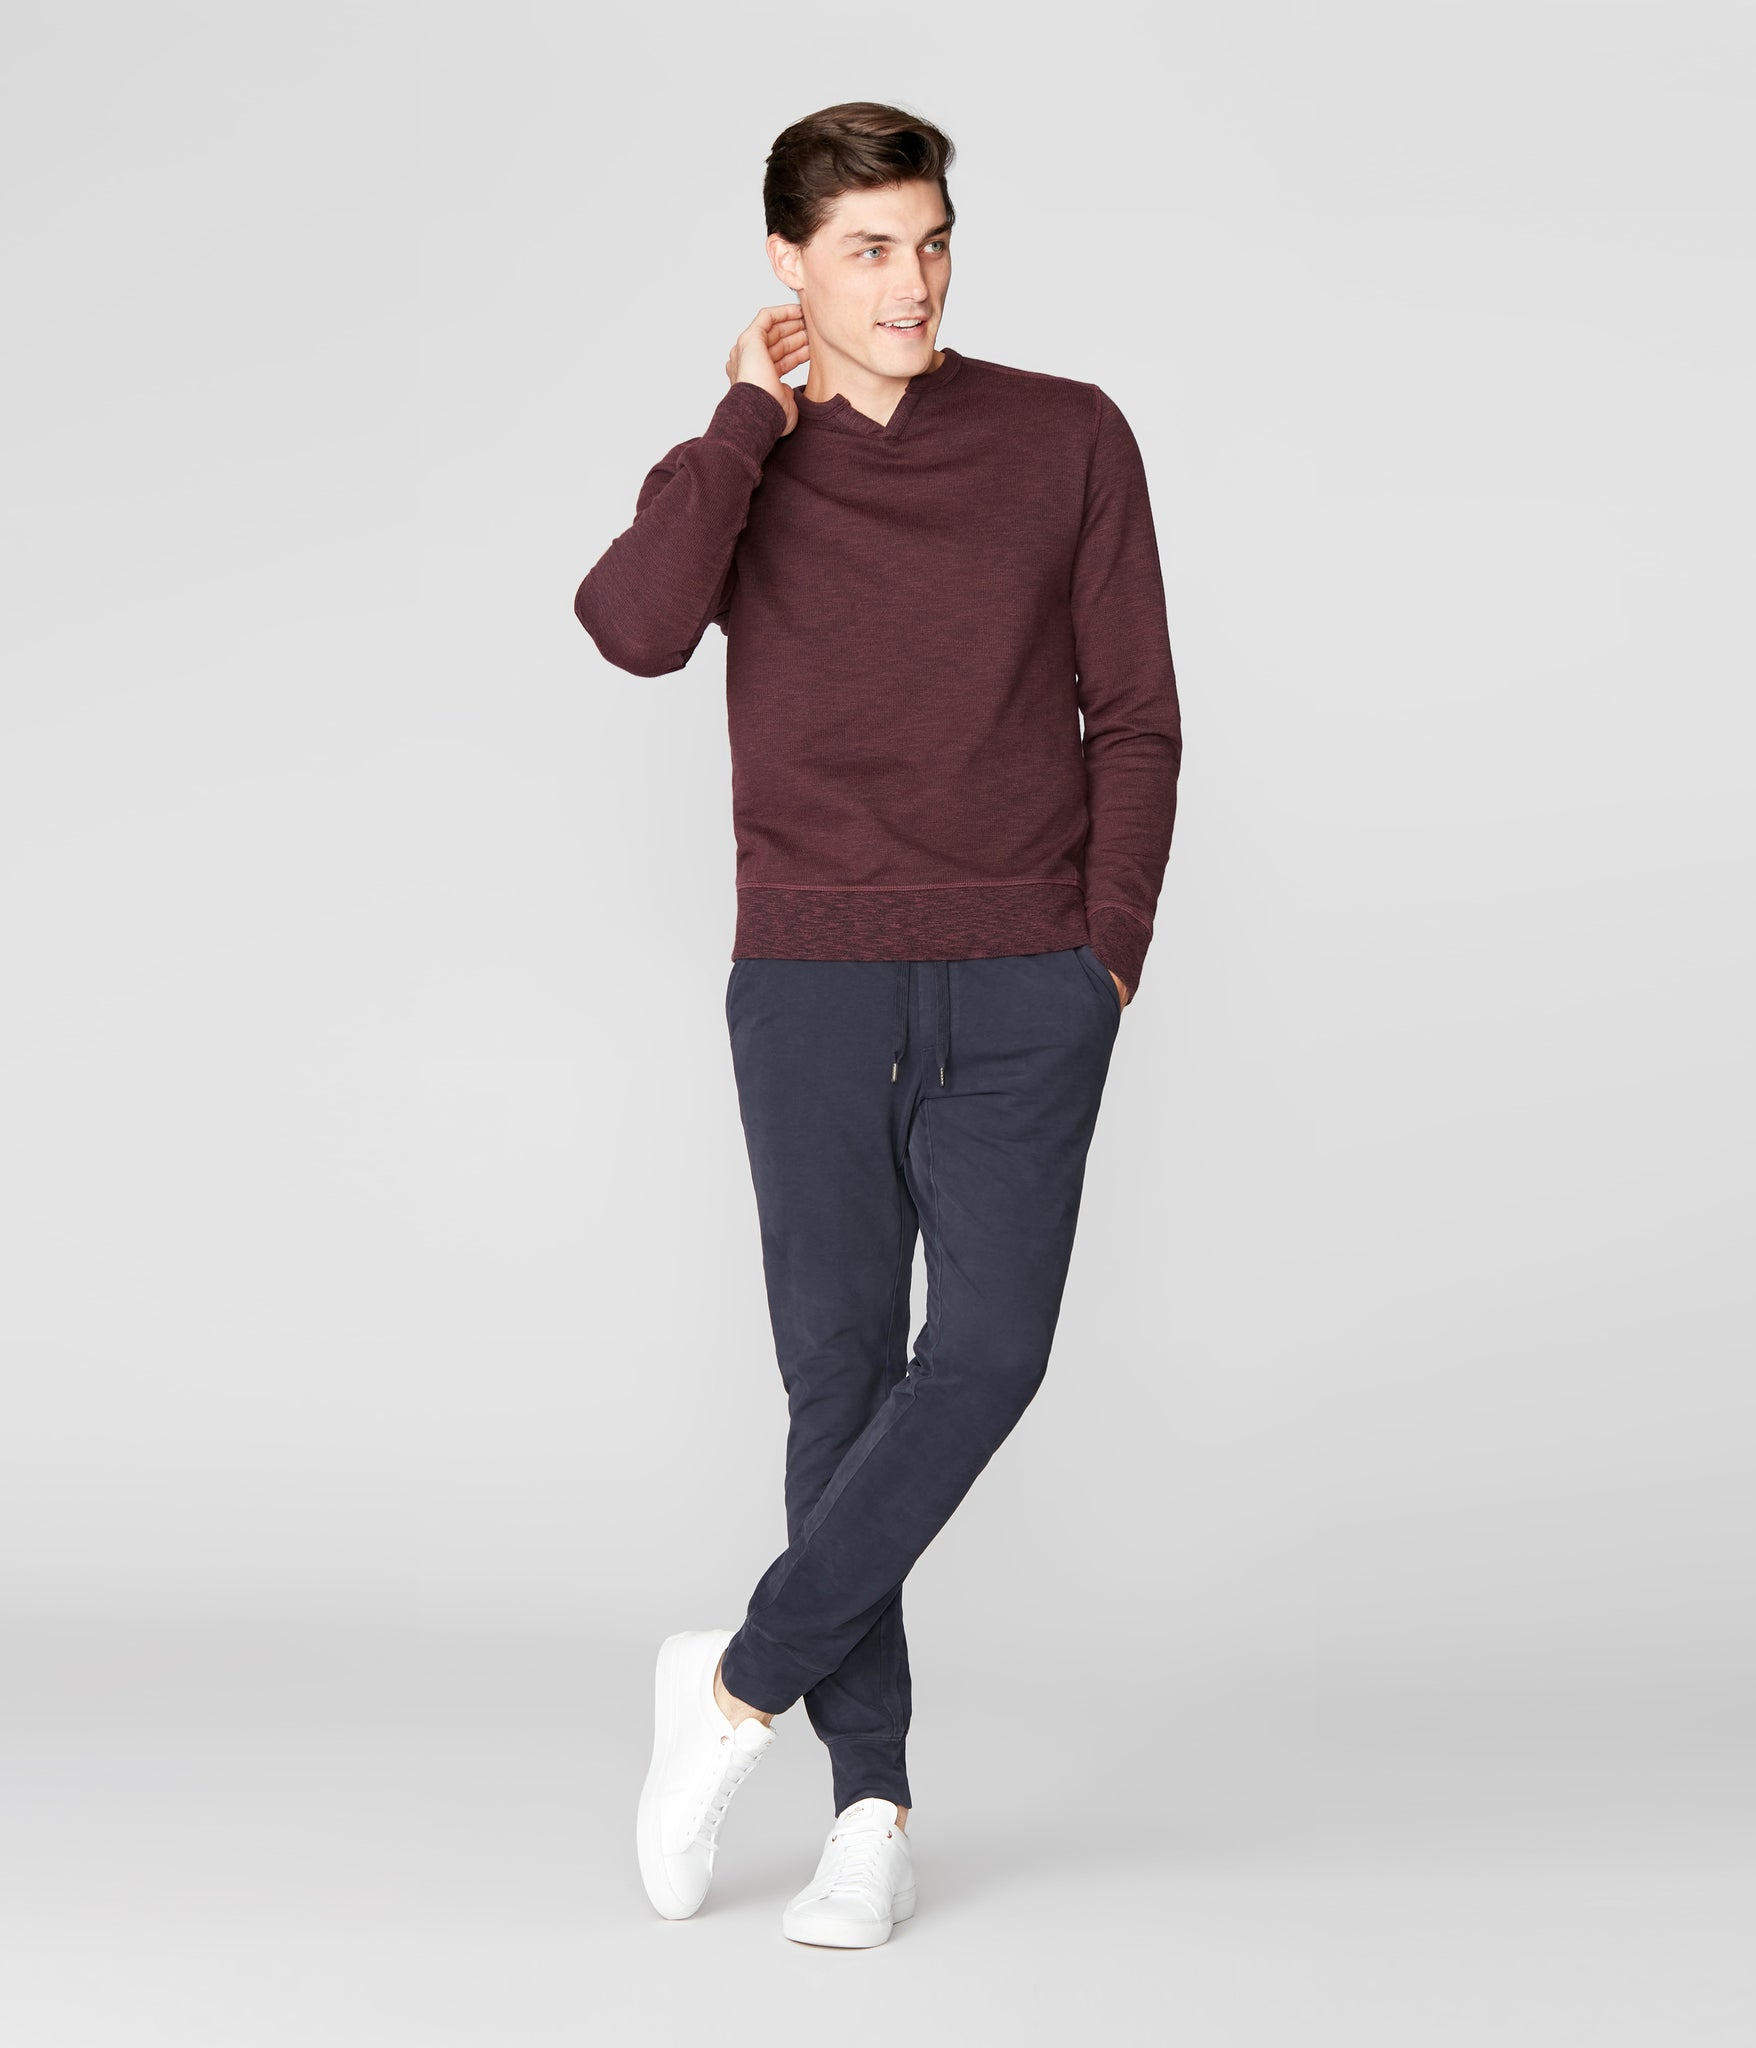 Victory V-Notch Sweatshirt in Black Marl - Wine